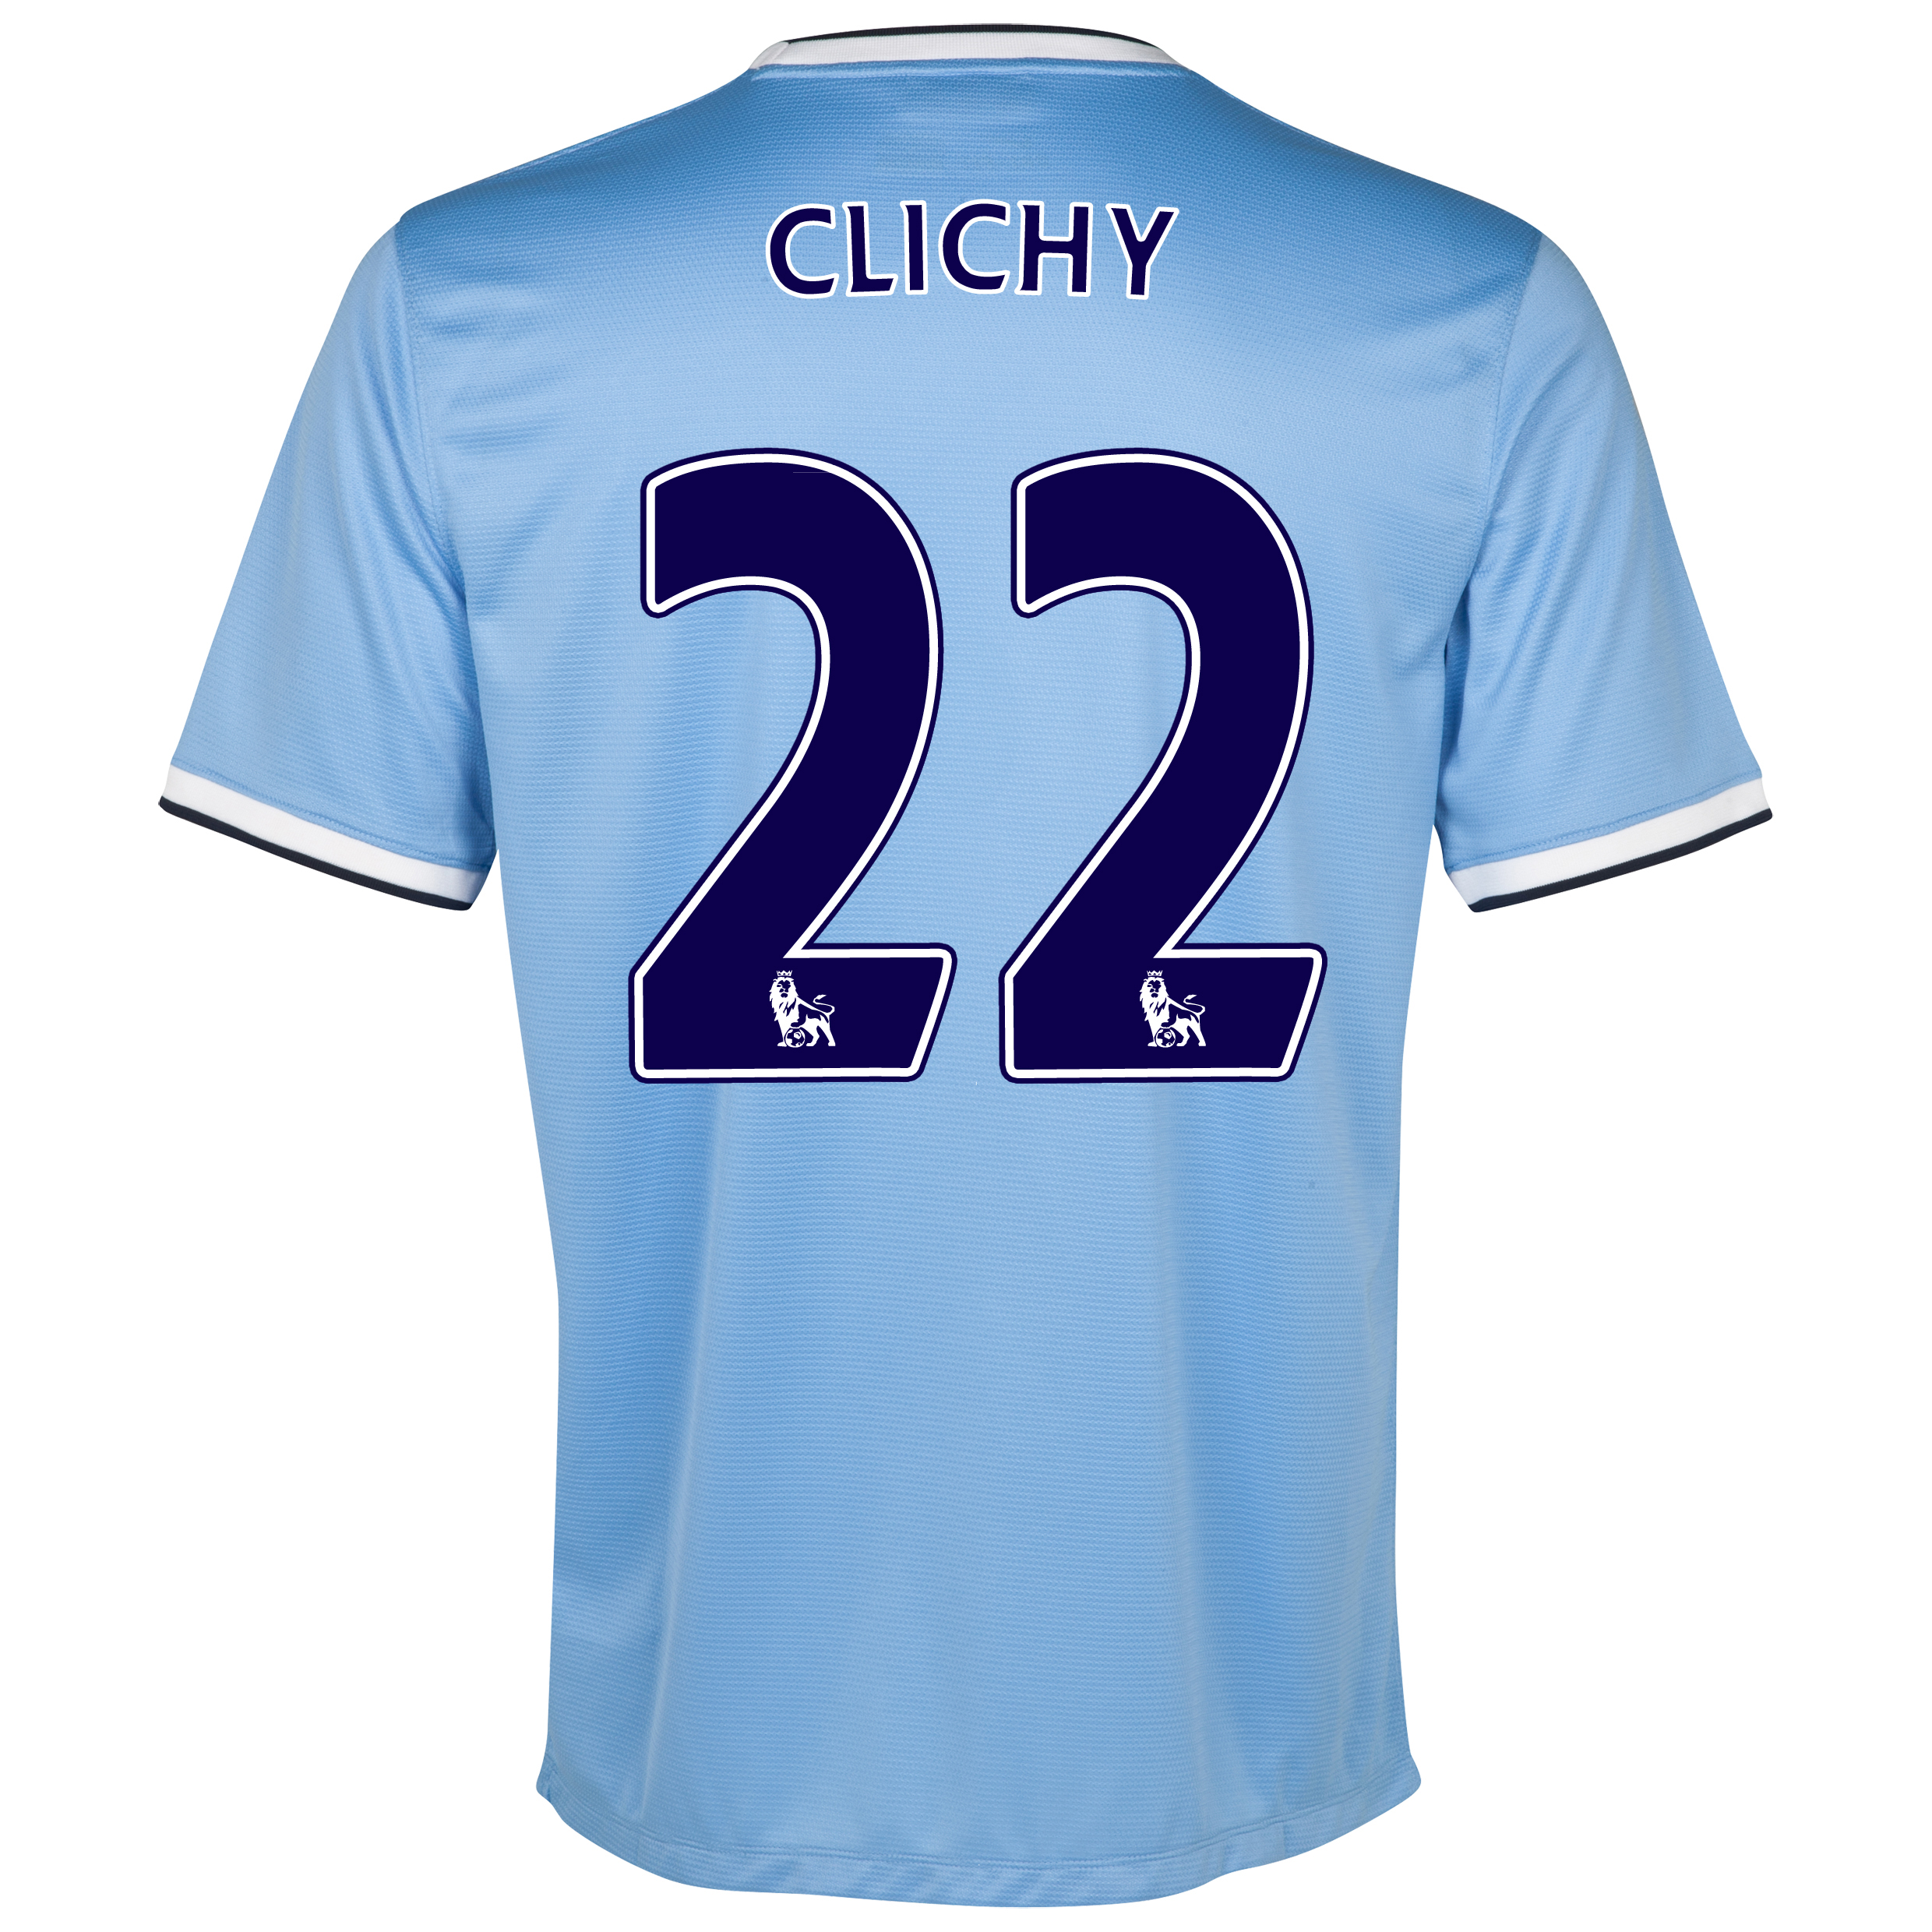 Manchester City Home Shirt 2013/14 - Womens with Clichy 22 printing